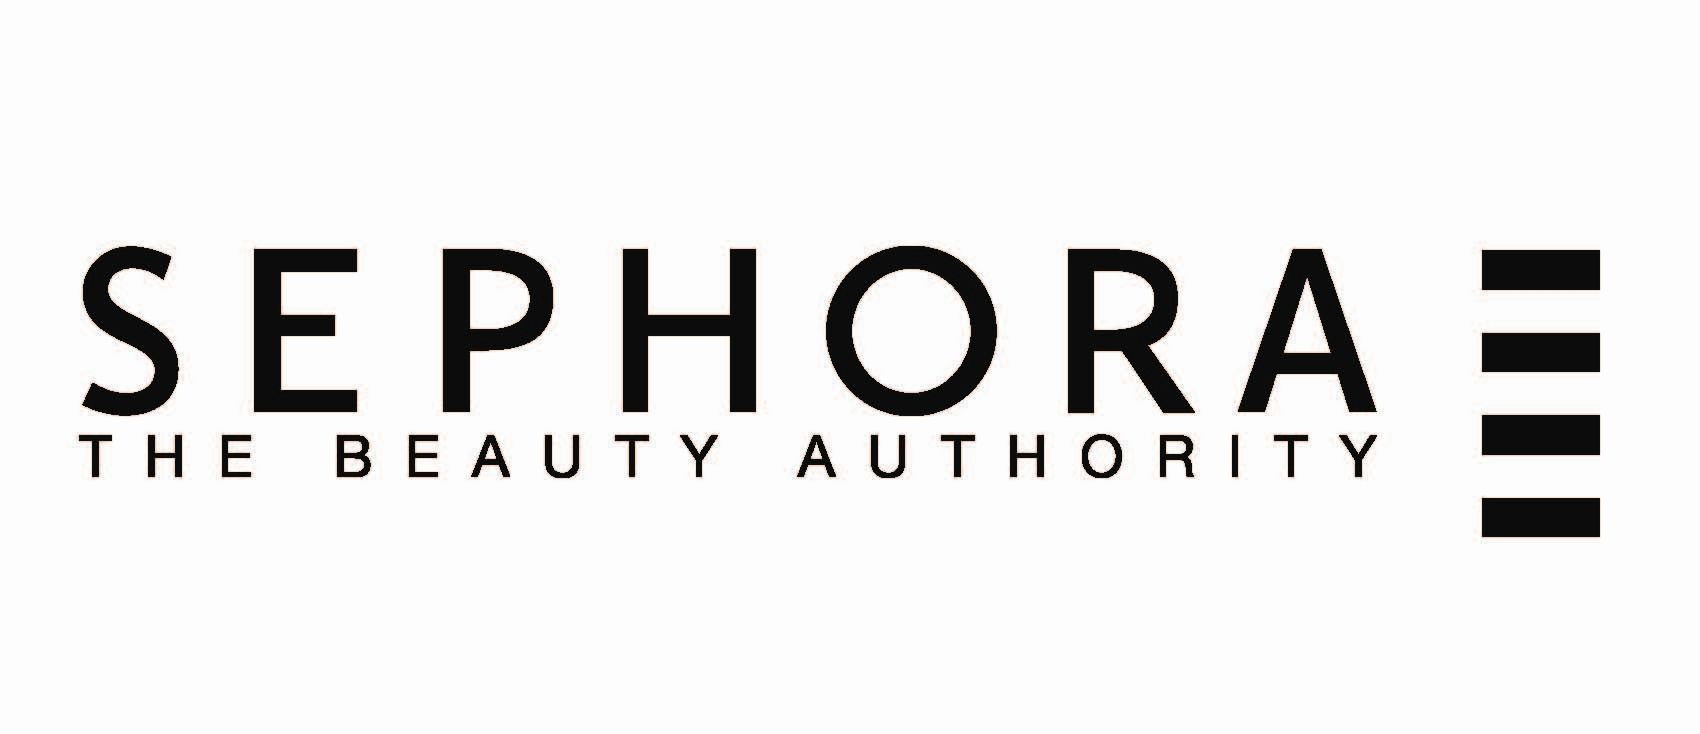 makeup brands logo. buy makeup, cosmetics, skincare and other products from beauty brands like clarisonic, opi, guerlain clinique. makeup logo l